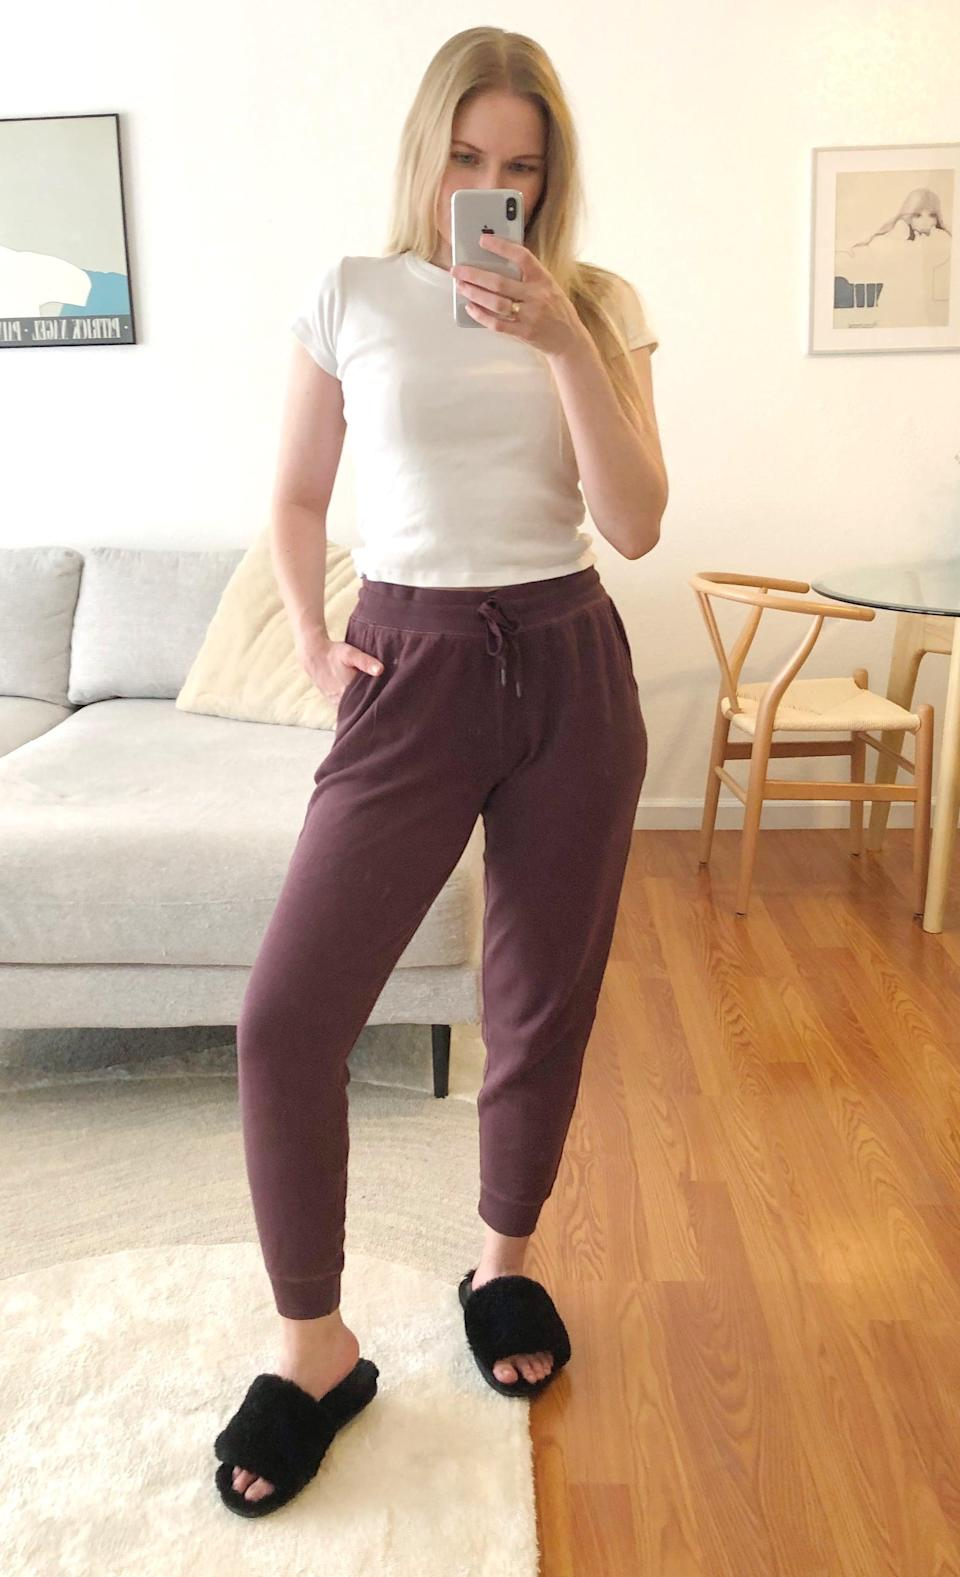 """<p><strong>The item:</strong> <span>Old Navy Mid-Rise Tapered-Leg Jogger Pants</span> ($18-$30, originally $30-$35)</p> <p><strong>What our editor said: </strong>""""If I have to run an errand to grab something at the store, they actually look cute with some sneakers and a denim jacket. I have them in a cute maroon shade, but they come in over 10 color choices and fun patterns."""" - KJ </p> <p>If you want to read more, here is the <a href=""""https://www.popsugar.com/fashion/most-comfortable-joggers-from-old-navy-editor-review-47675011"""" class=""""link rapid-noclick-resp"""" rel=""""nofollow noopener"""" target=""""_blank"""" data-ylk=""""slk:complete review"""">complete review</a>.</p>"""